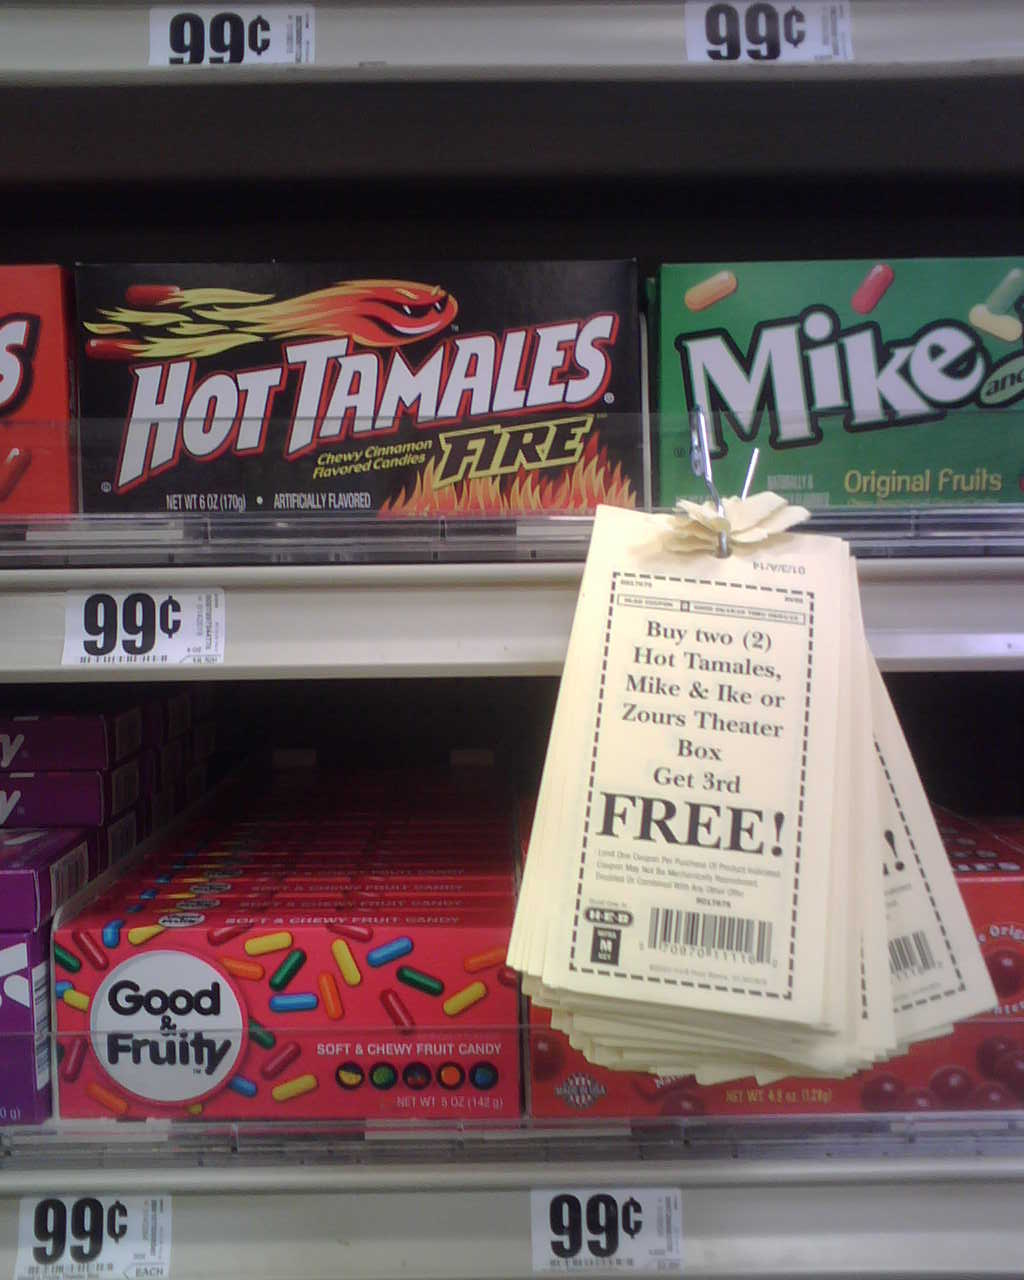 image regarding Heb Printable Coupons named Coupon stacking at HEB: a small guidebook